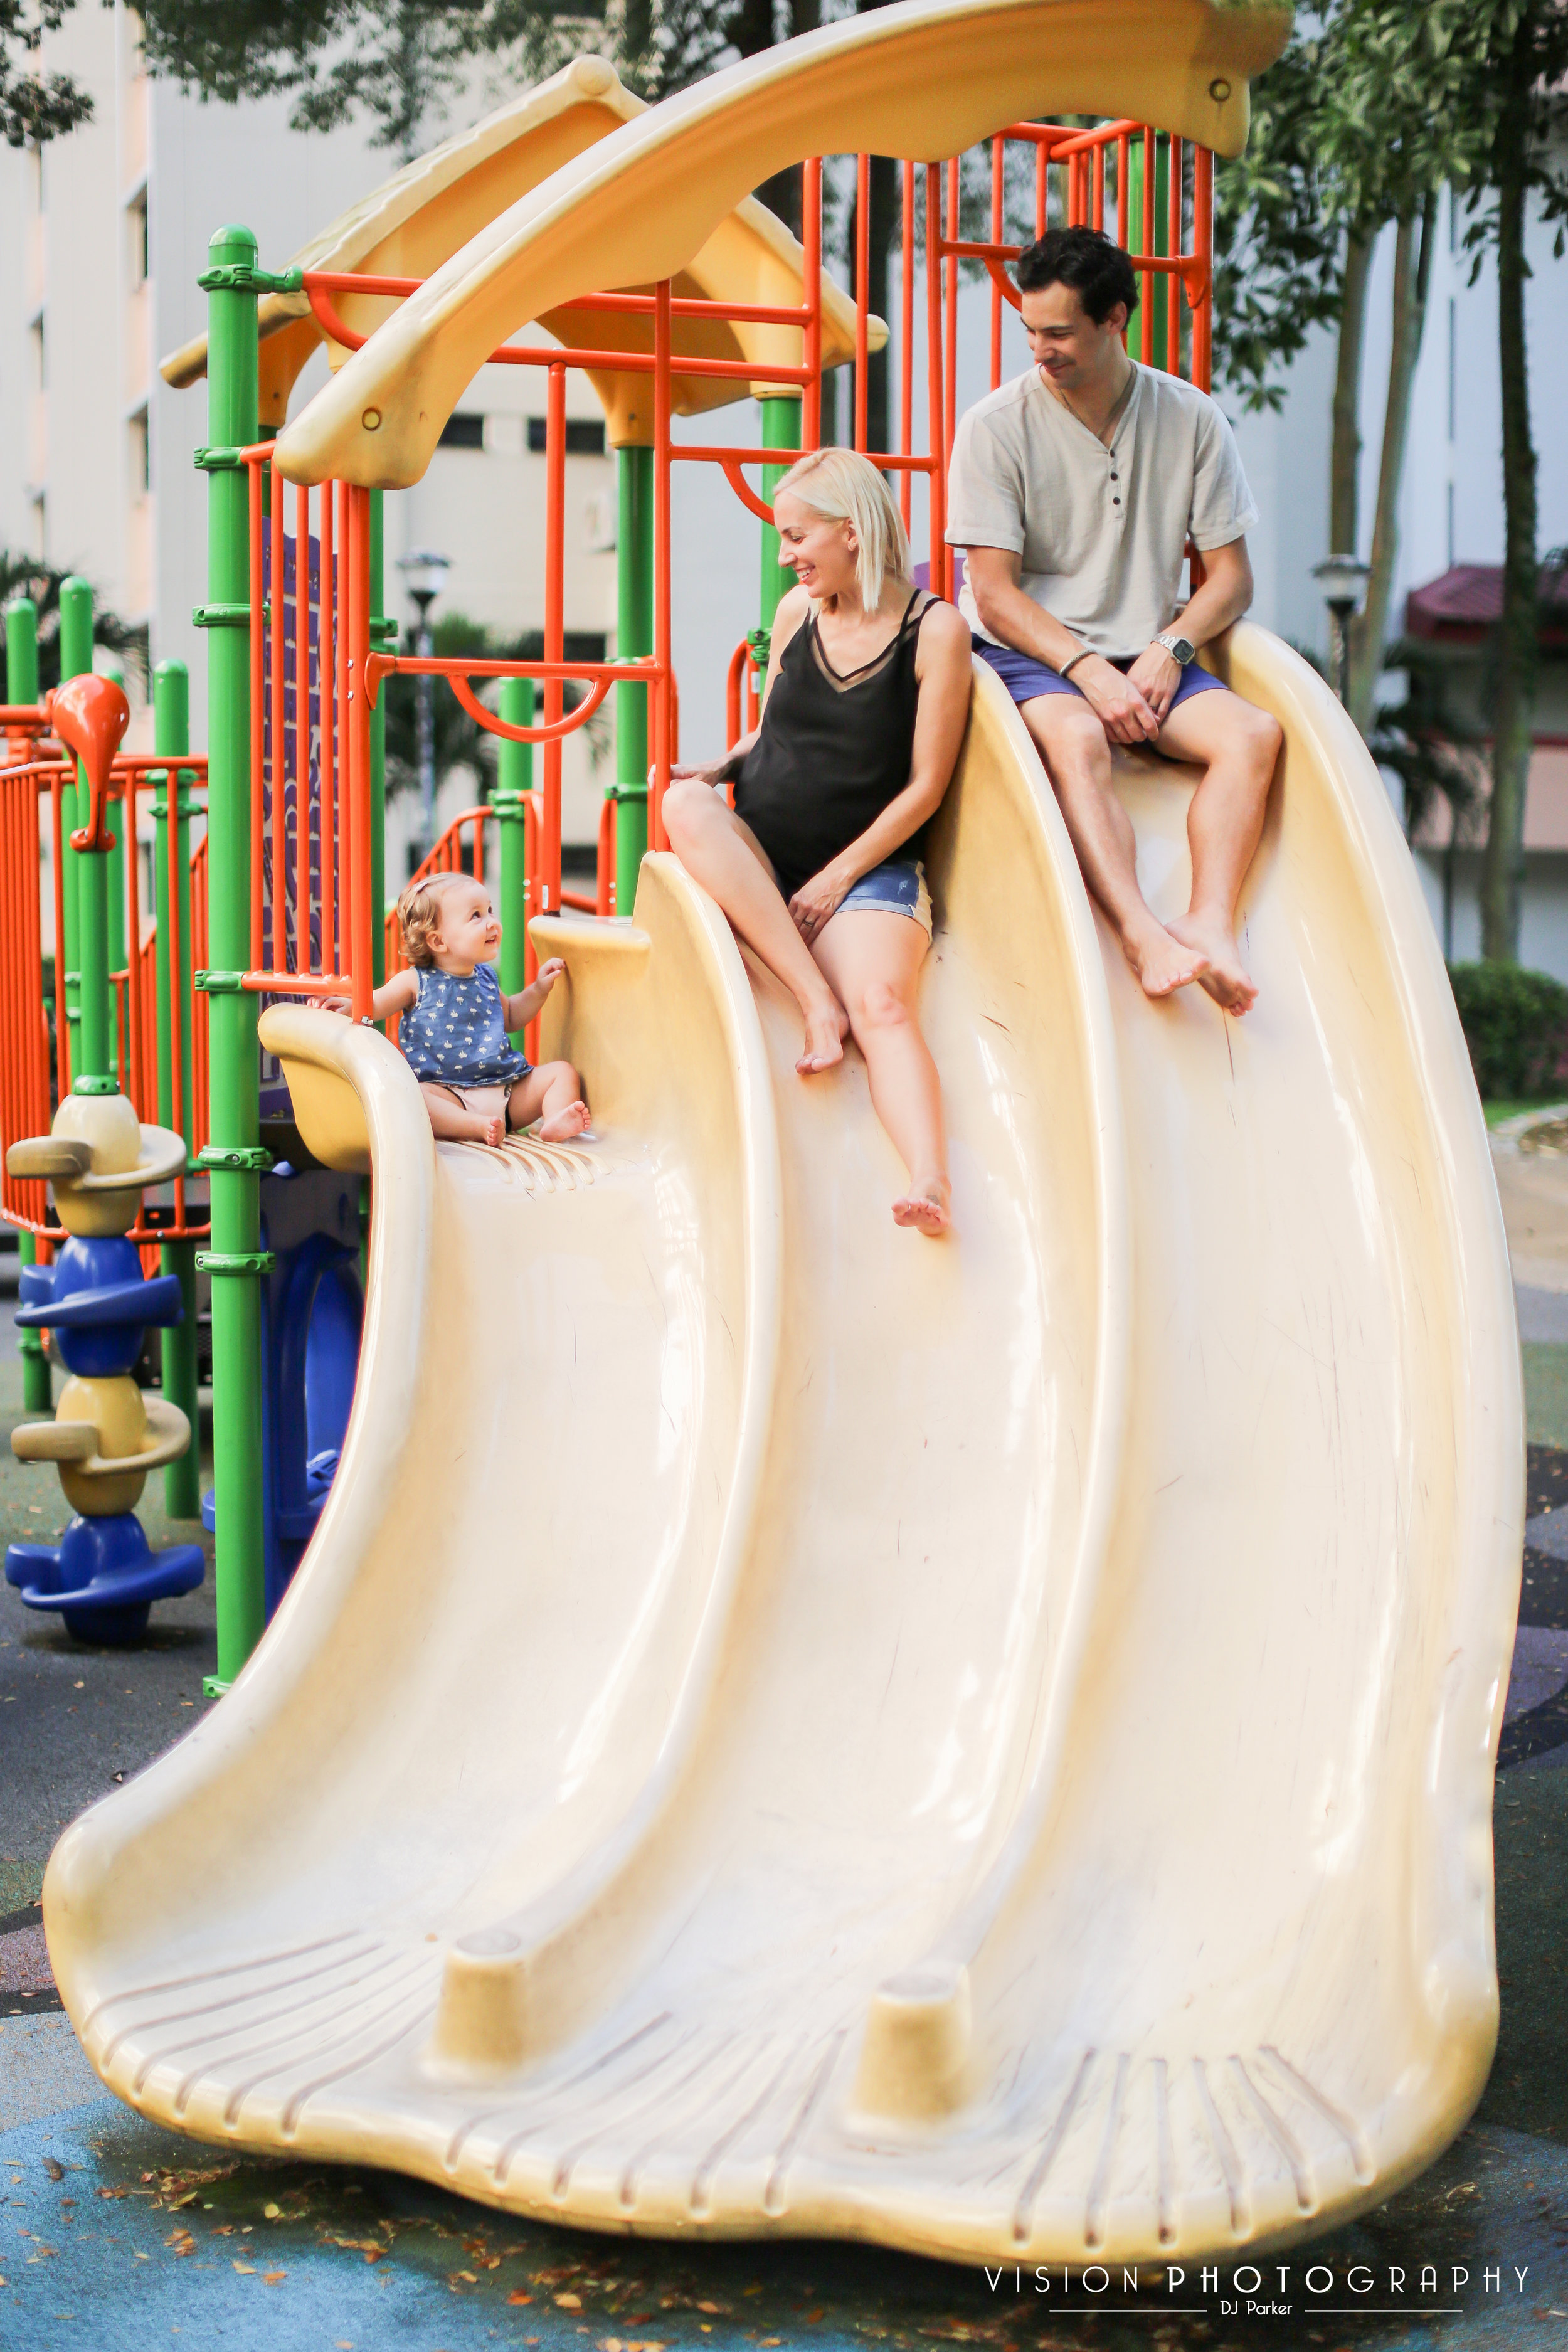 Outdoor sibling maternity playground